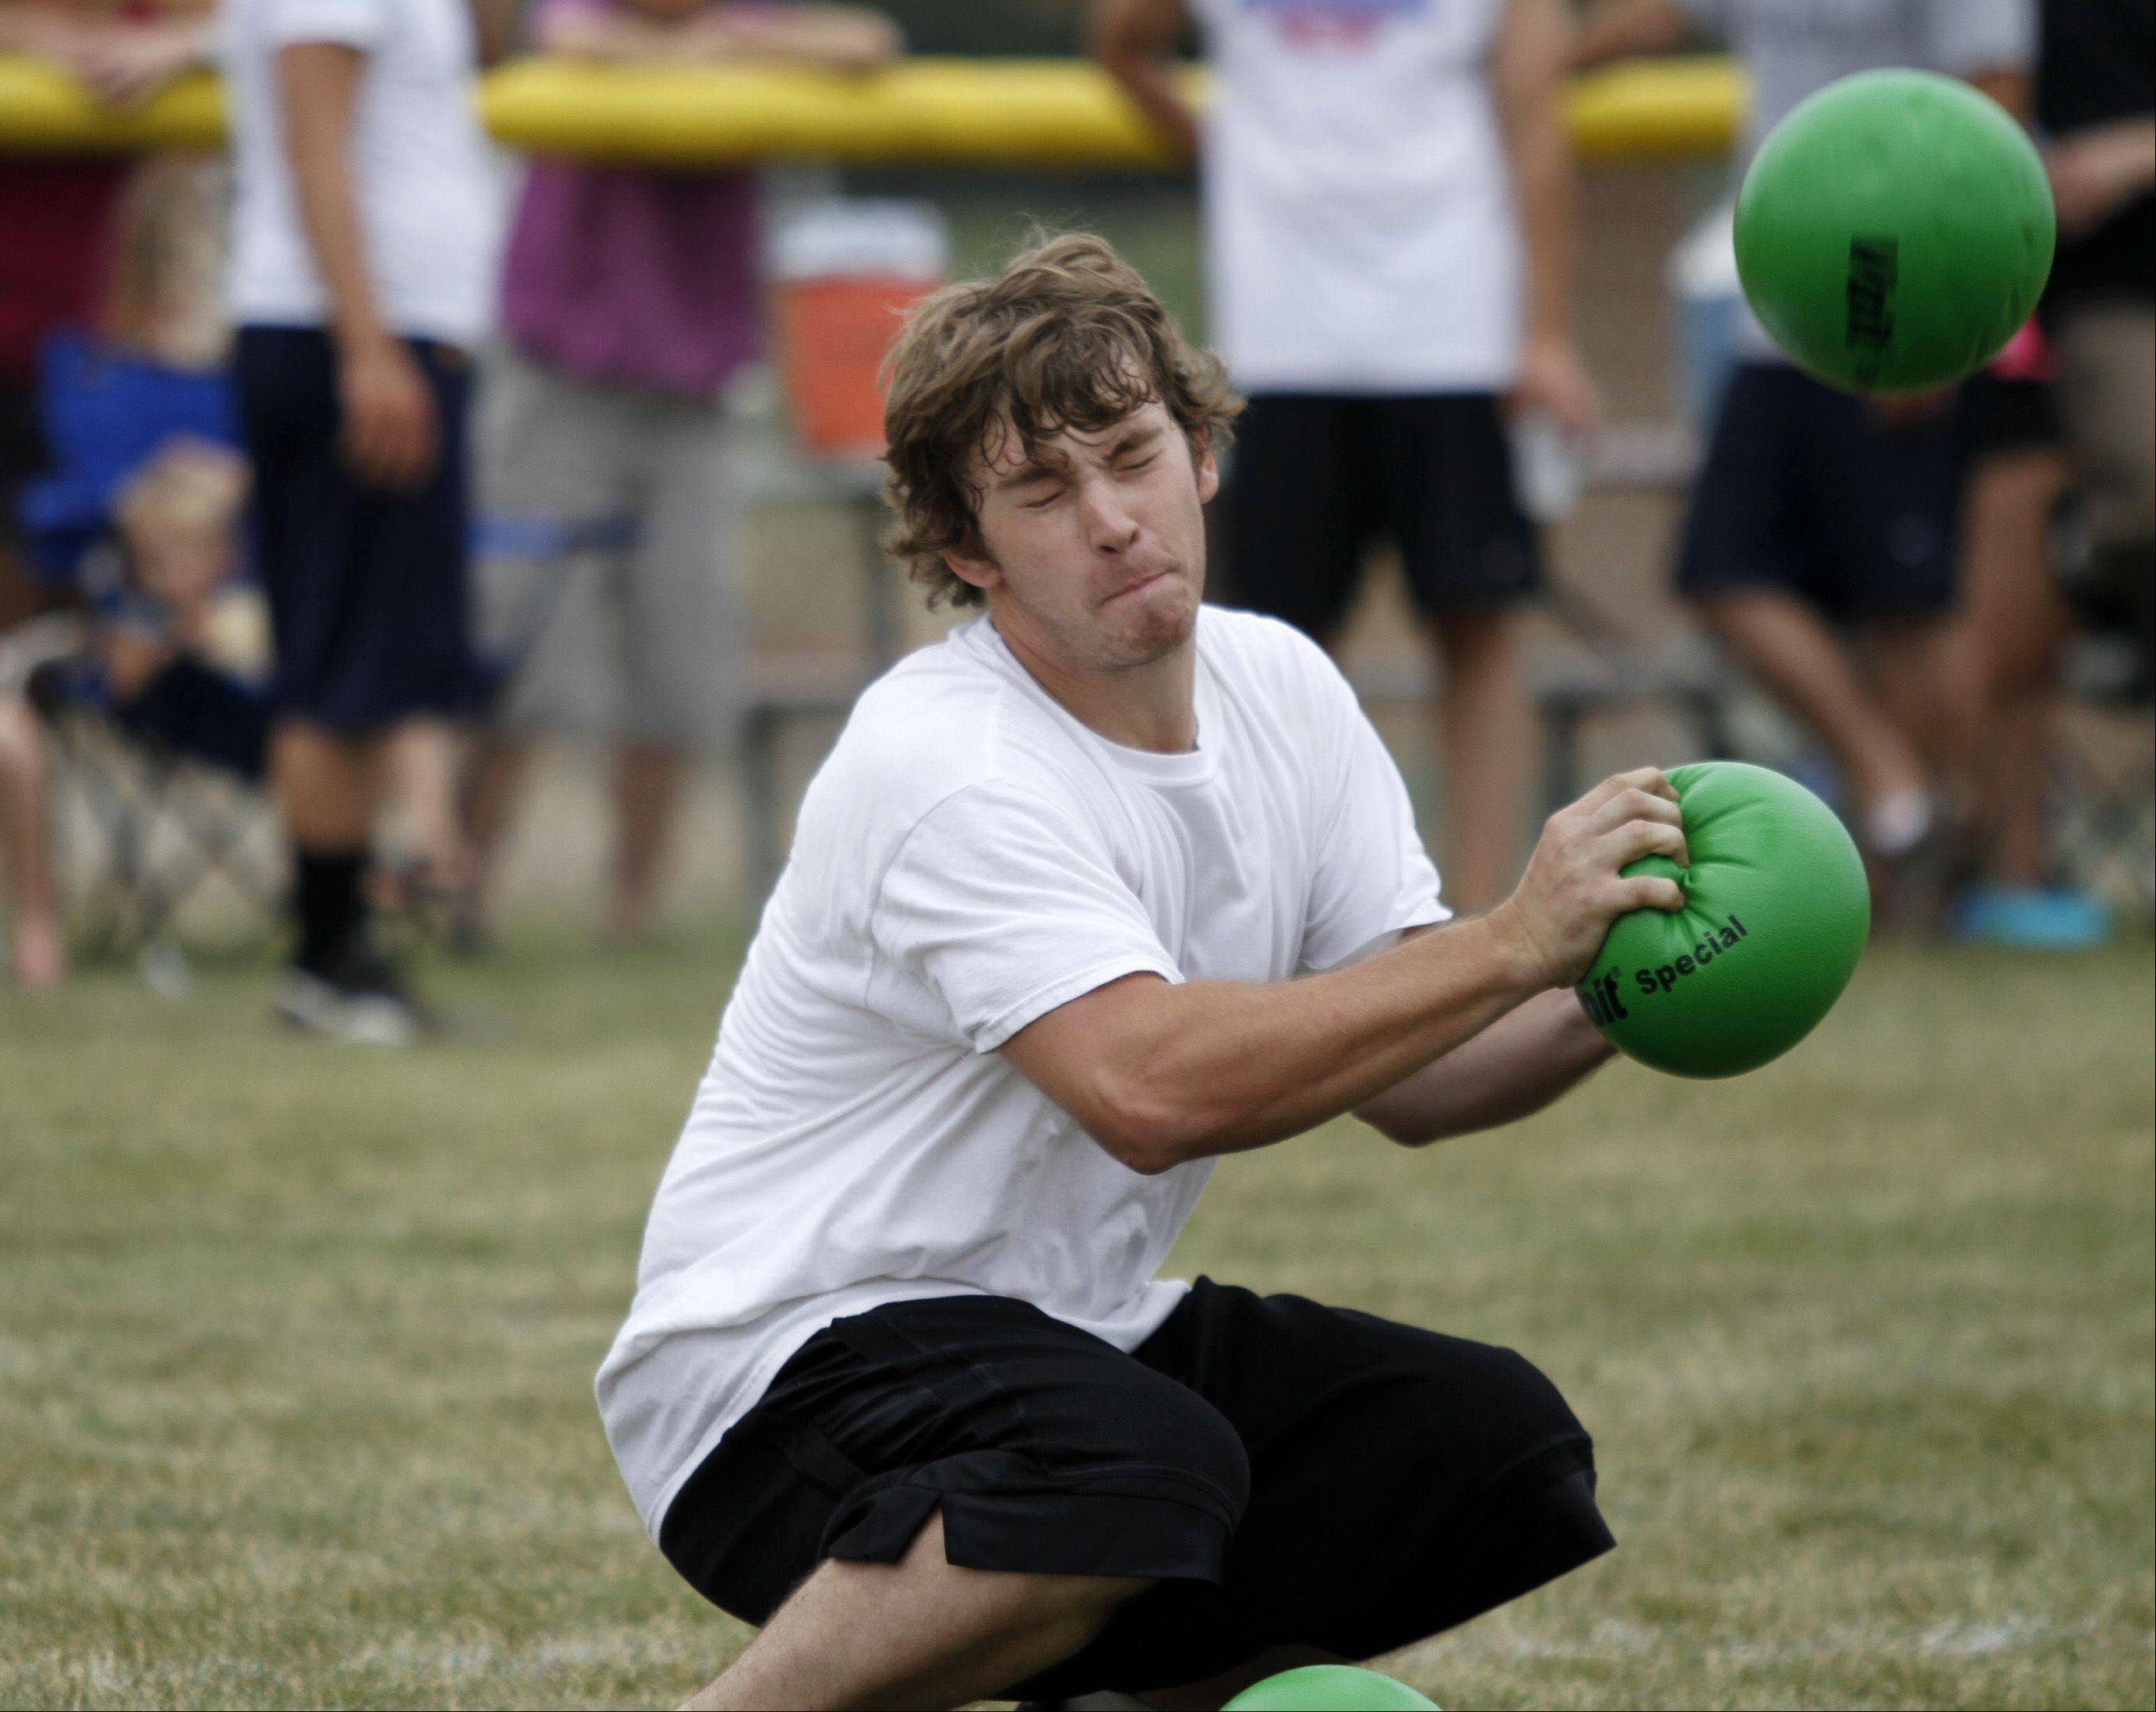 Dan Groves, from St. Charles, deflects a ball.